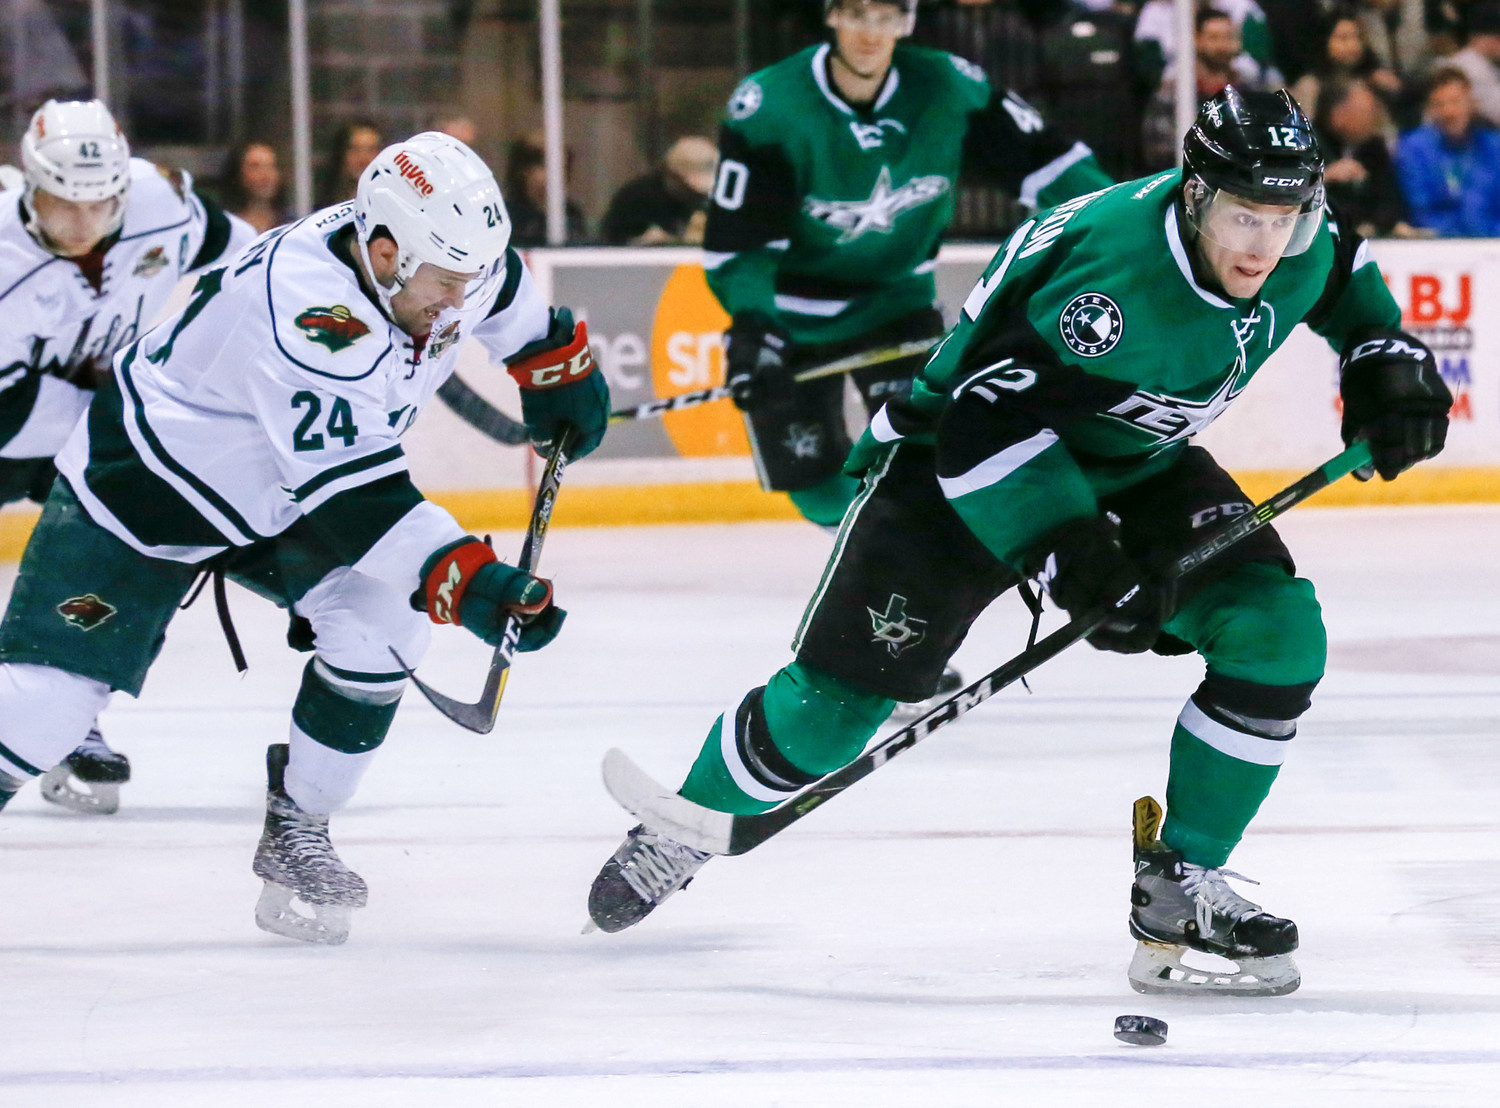 Colin Markison scored a goal and had two assists and the Texas Stars beat the Iowa Wild 4-2 at home on Wednesday night.